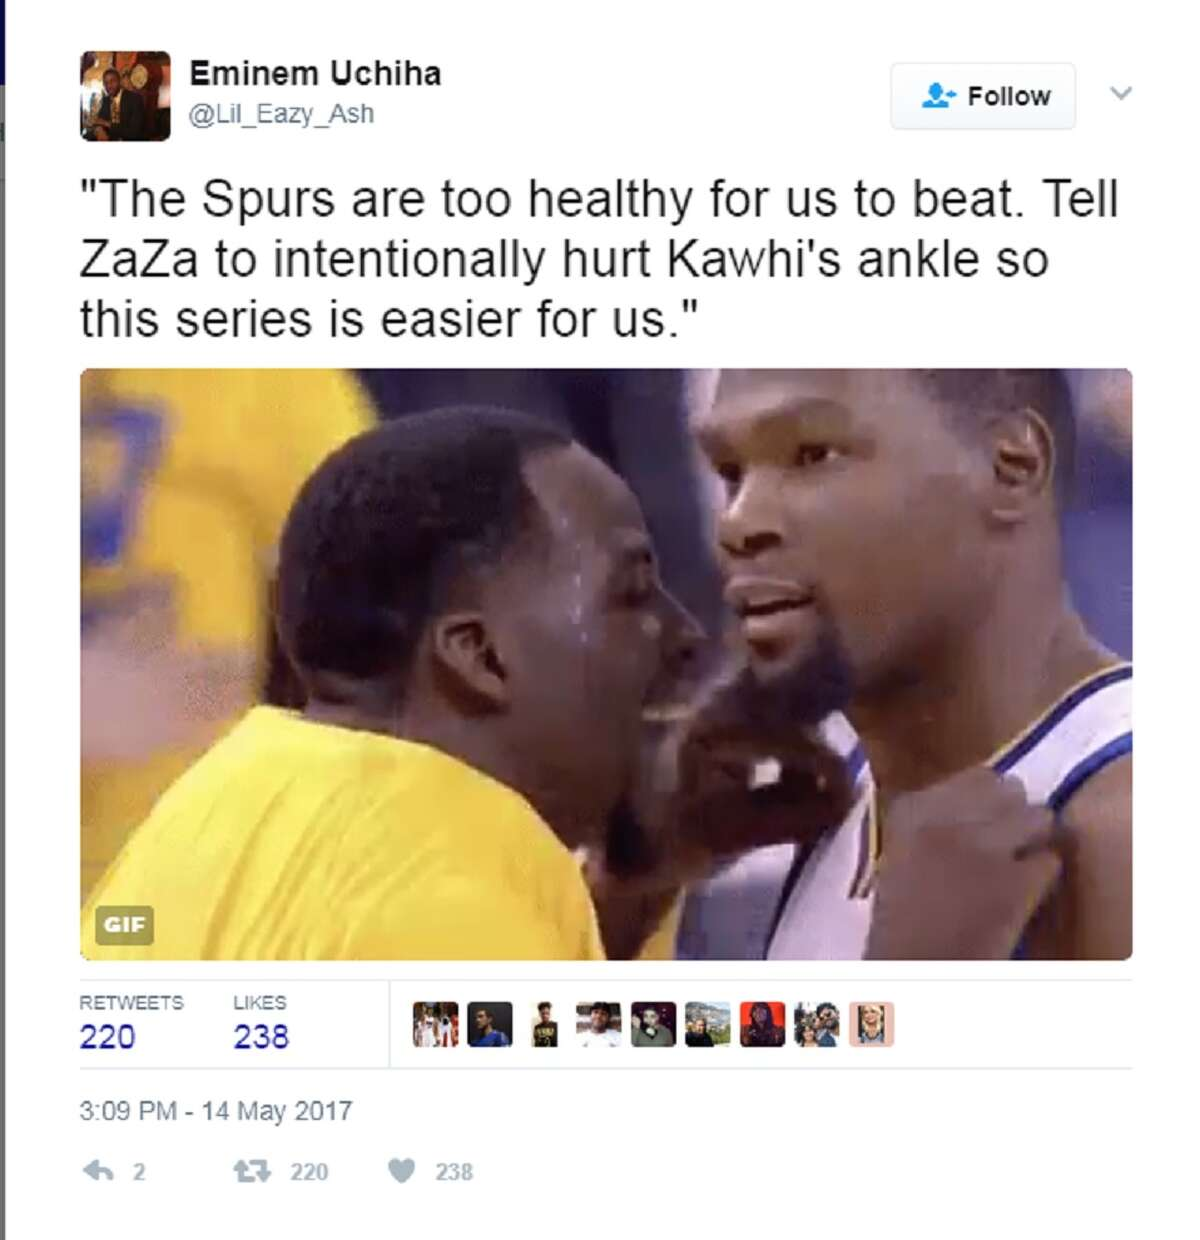 It did not take long for Twitter to take issue with Zaza Pachulia after he seemingly intentionally undercut Kawhi Leonard in Game 1 by obstructing his landing on a shot that led to Leonard rolling his left ankle and forcing him from the game.